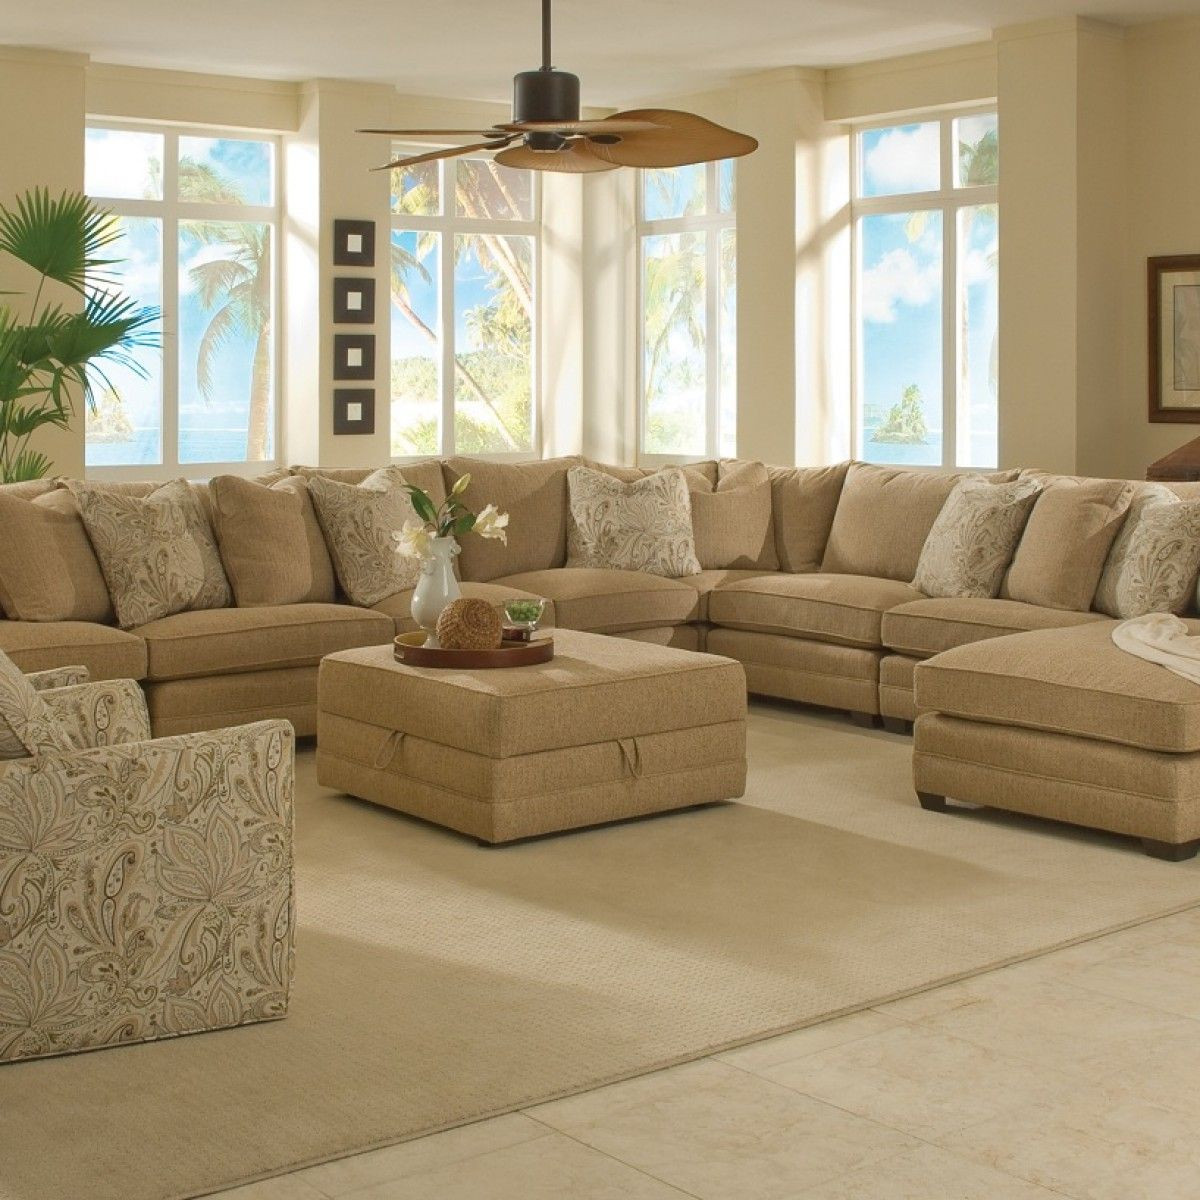 Best ideas about Family Room Sectionals . Save or Pin Magnificent Sectional Sofas Now.